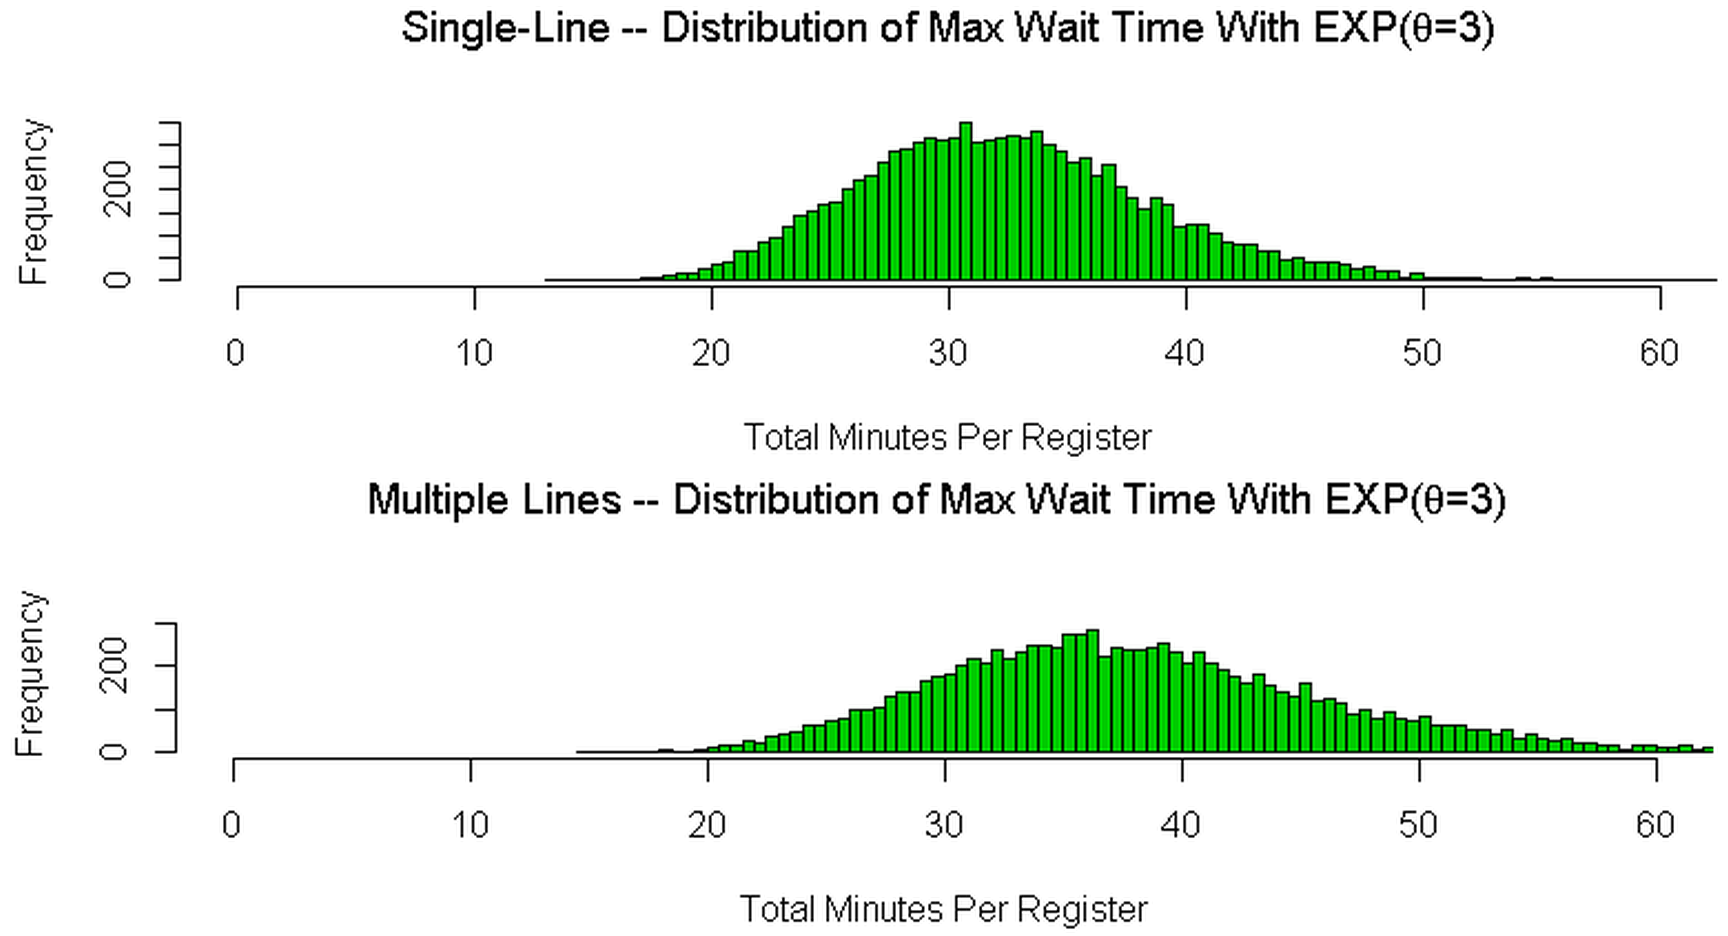 Queueing analysis by Wes Stevenson from statistical-research.com